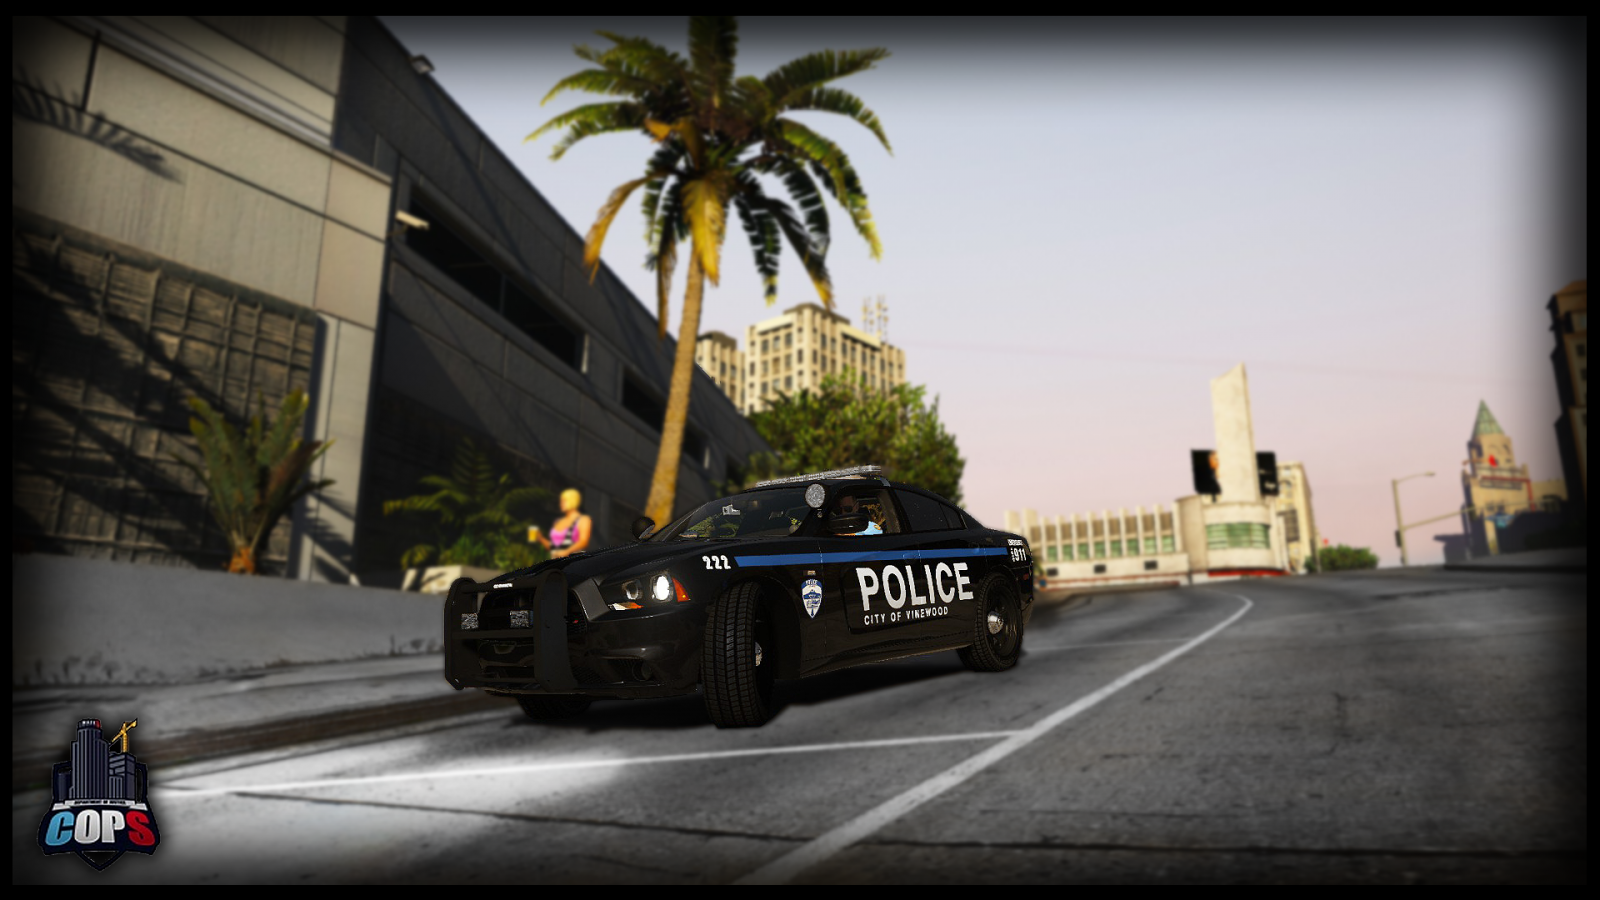 2014 Vinewood Charger